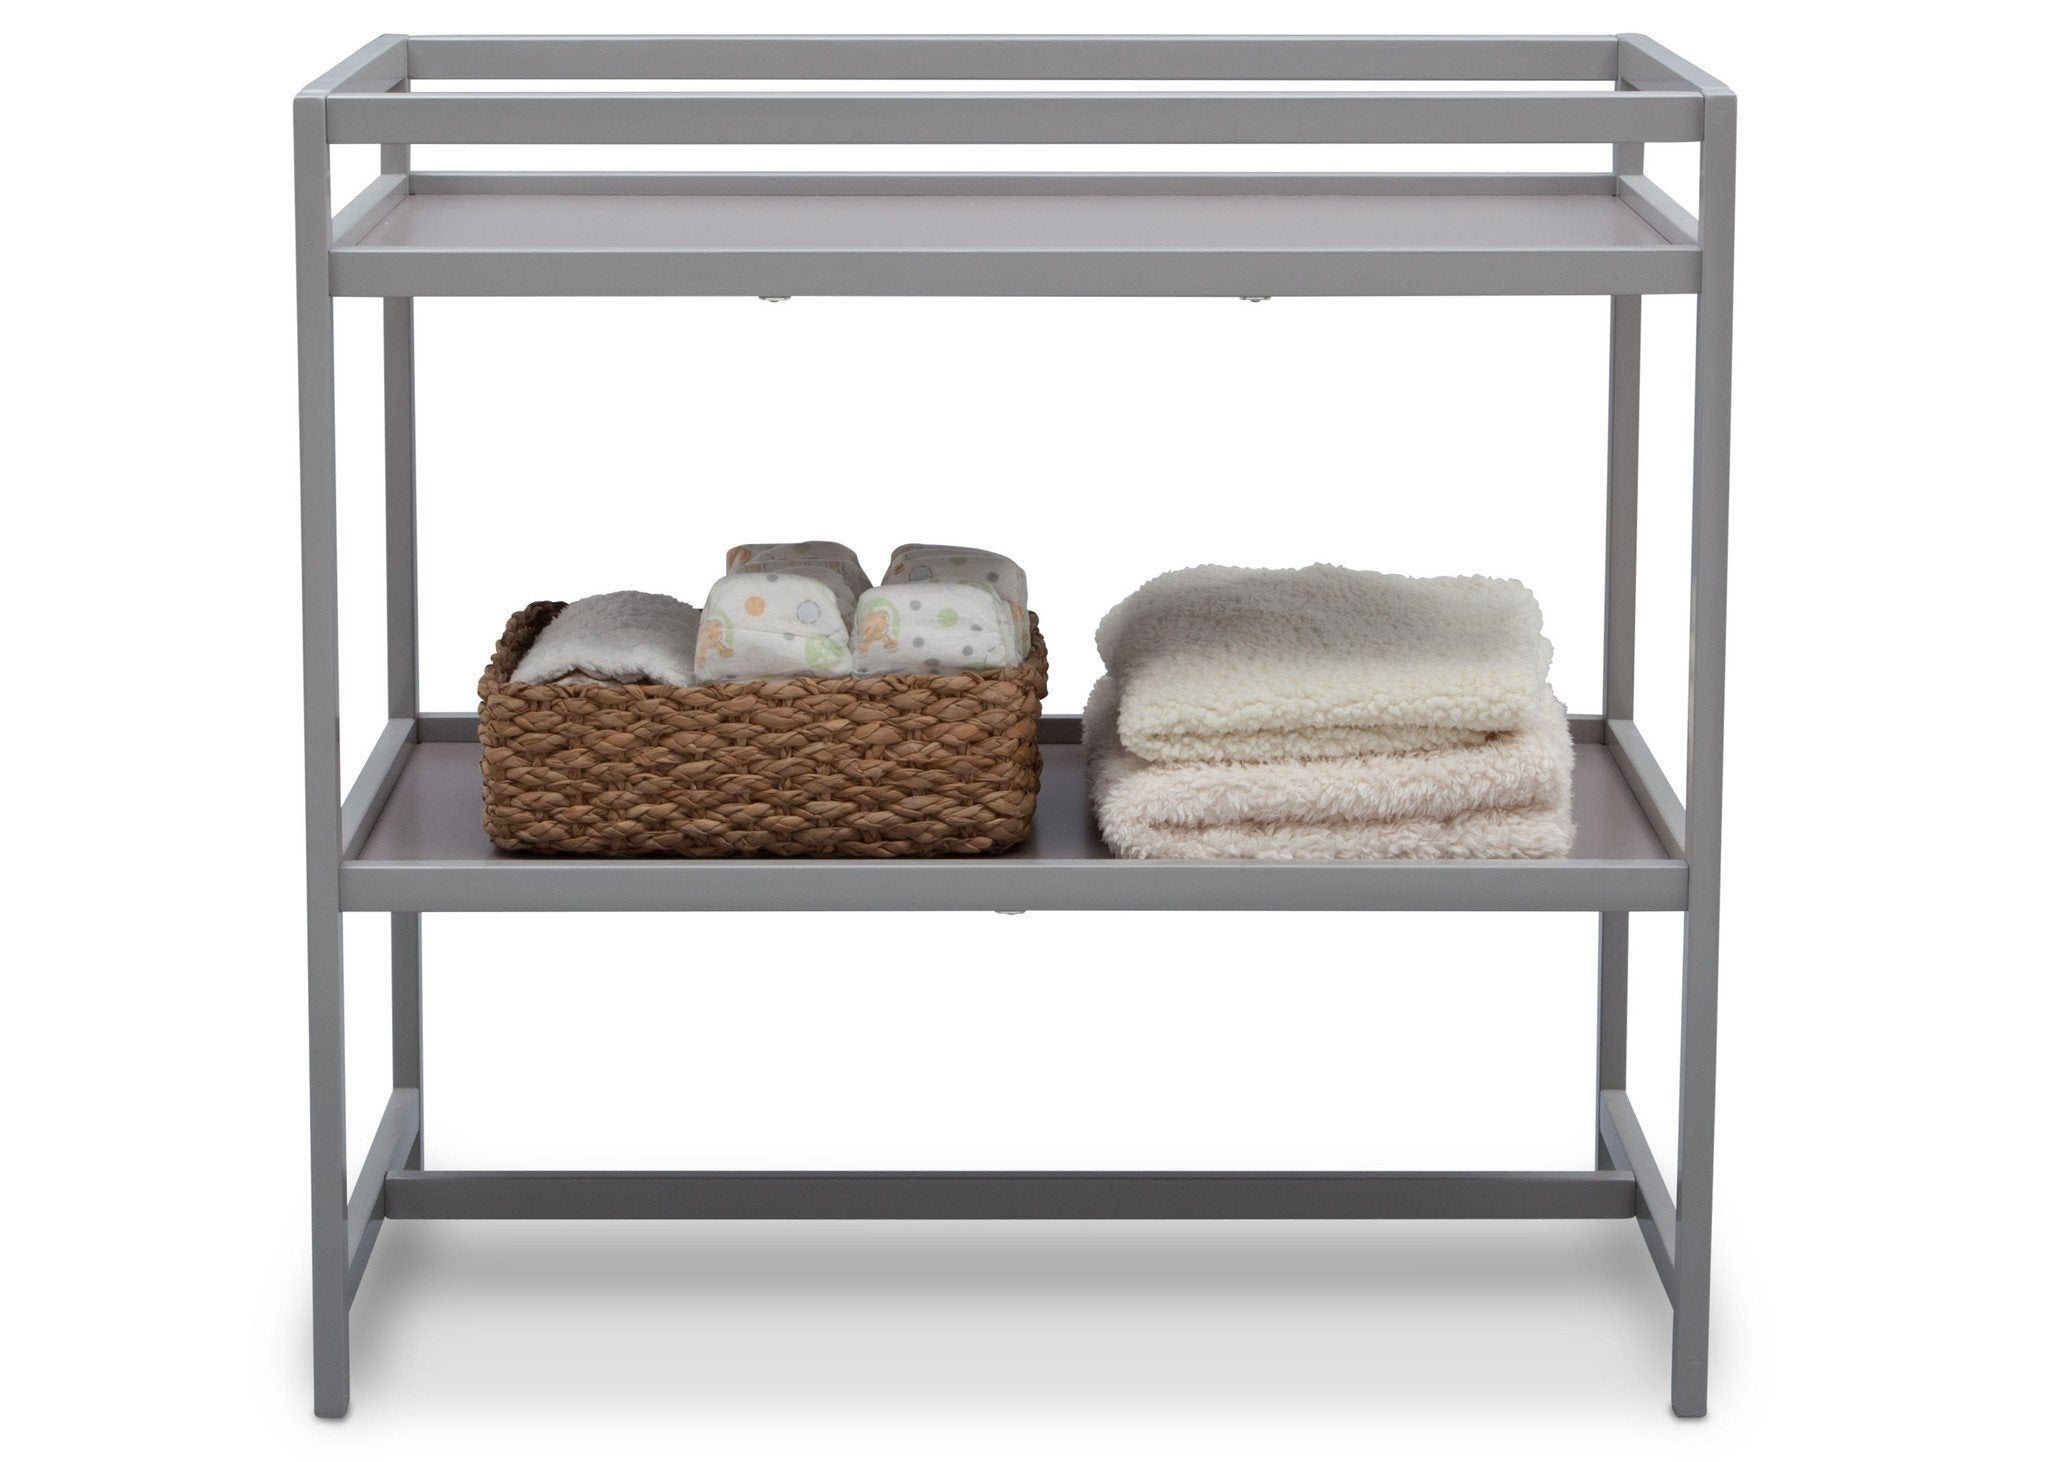 Delta Children Grey (026) Harbor Changing Table, Front View with Props a3a